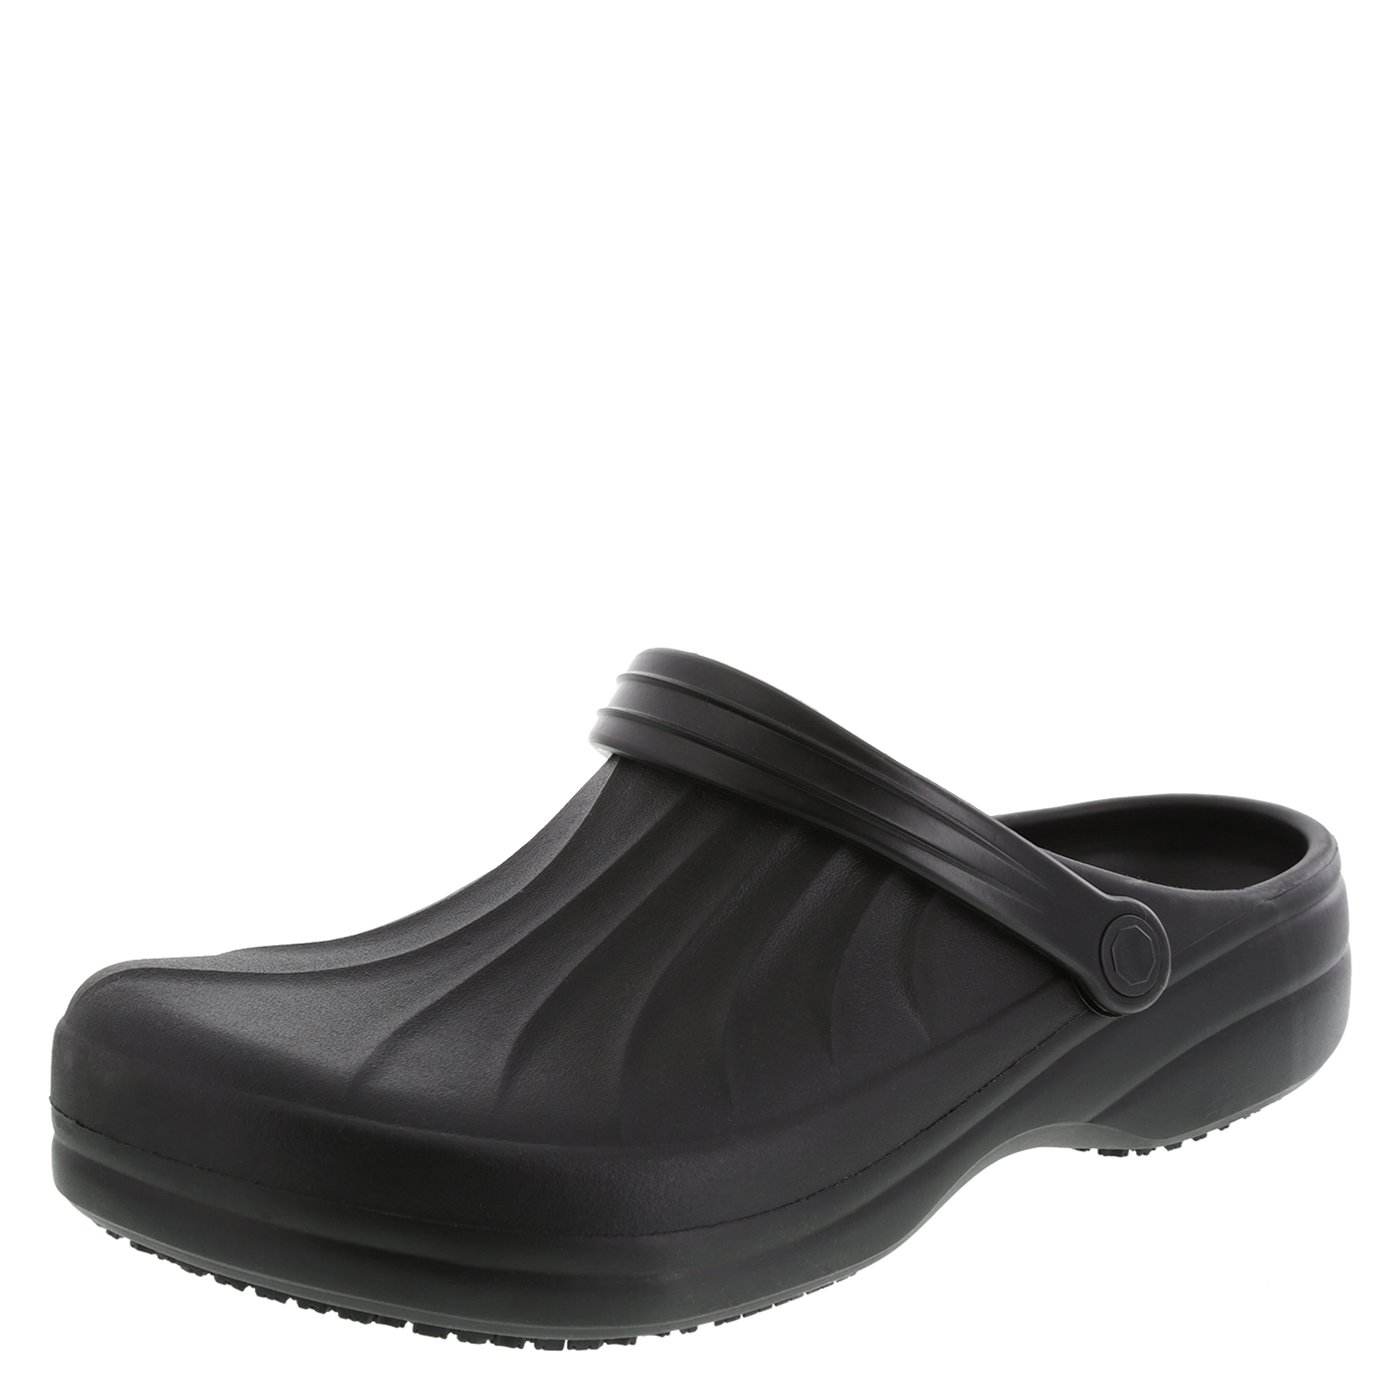 safeTstep Slip Resistant Men's Black Men's Complete Clog 11 Regular